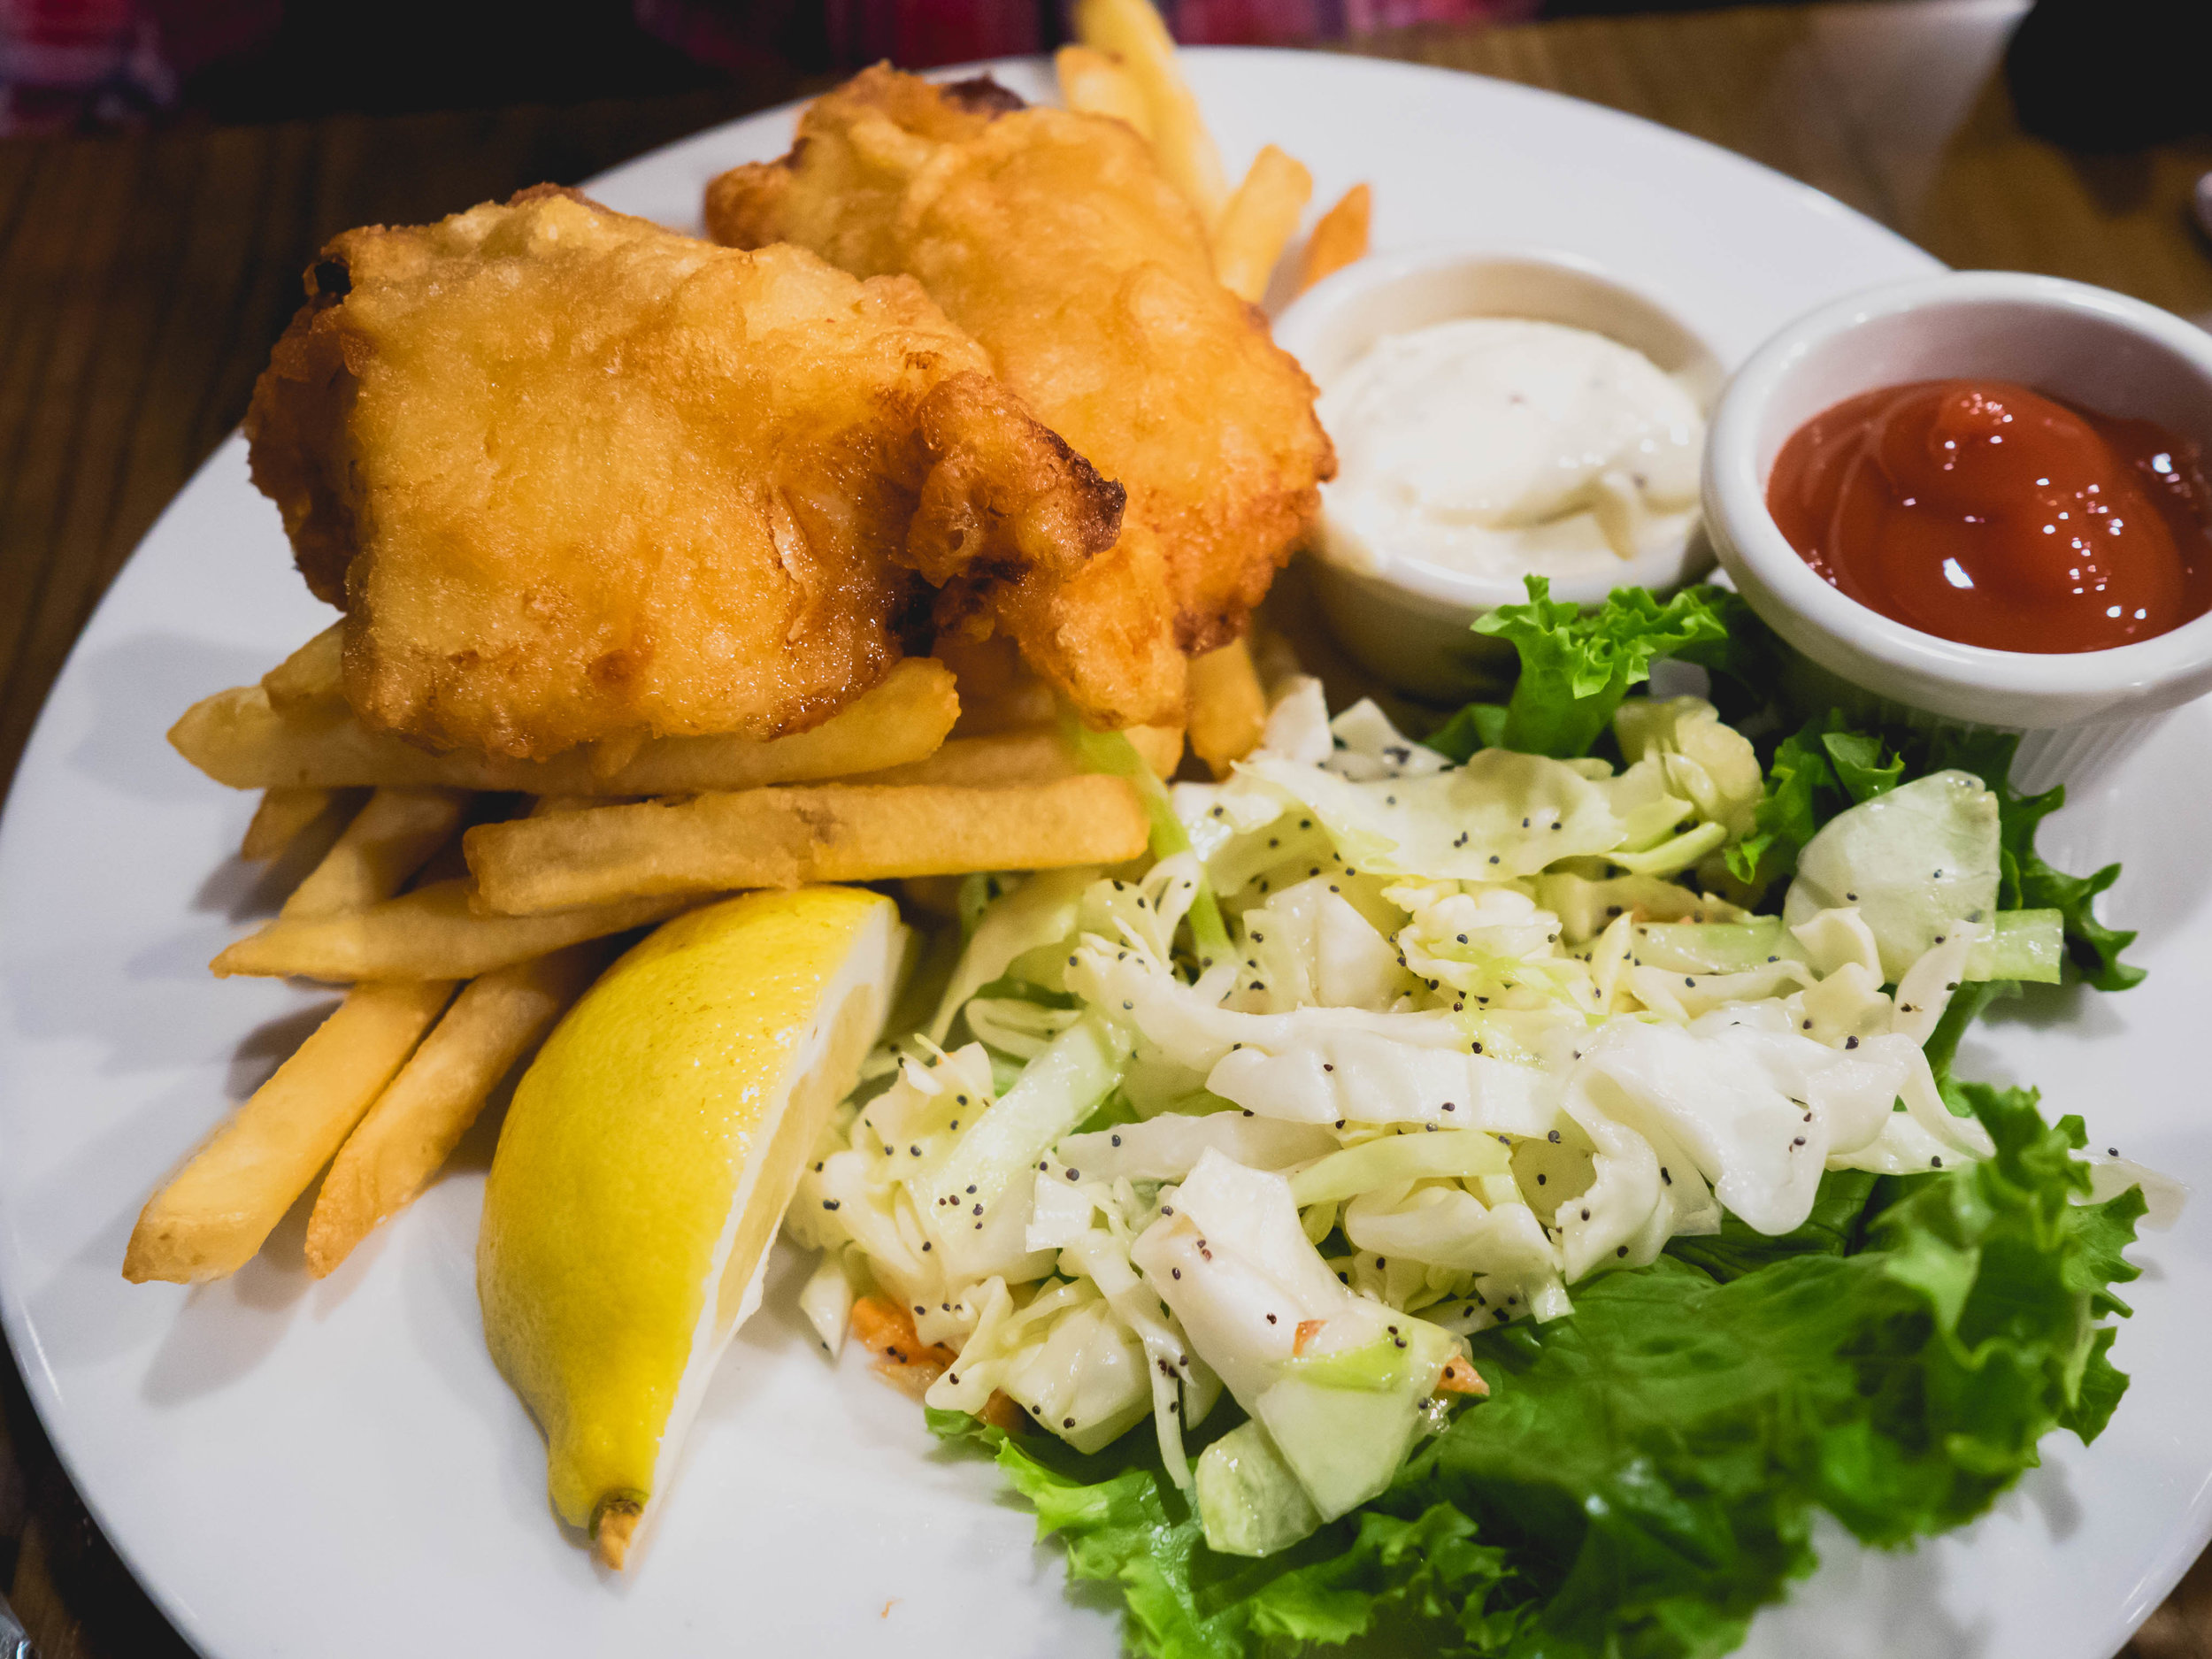 fish and chips : bar hop ale battered pacific cod, citrus tartar sauce, coleslaw, french fries.